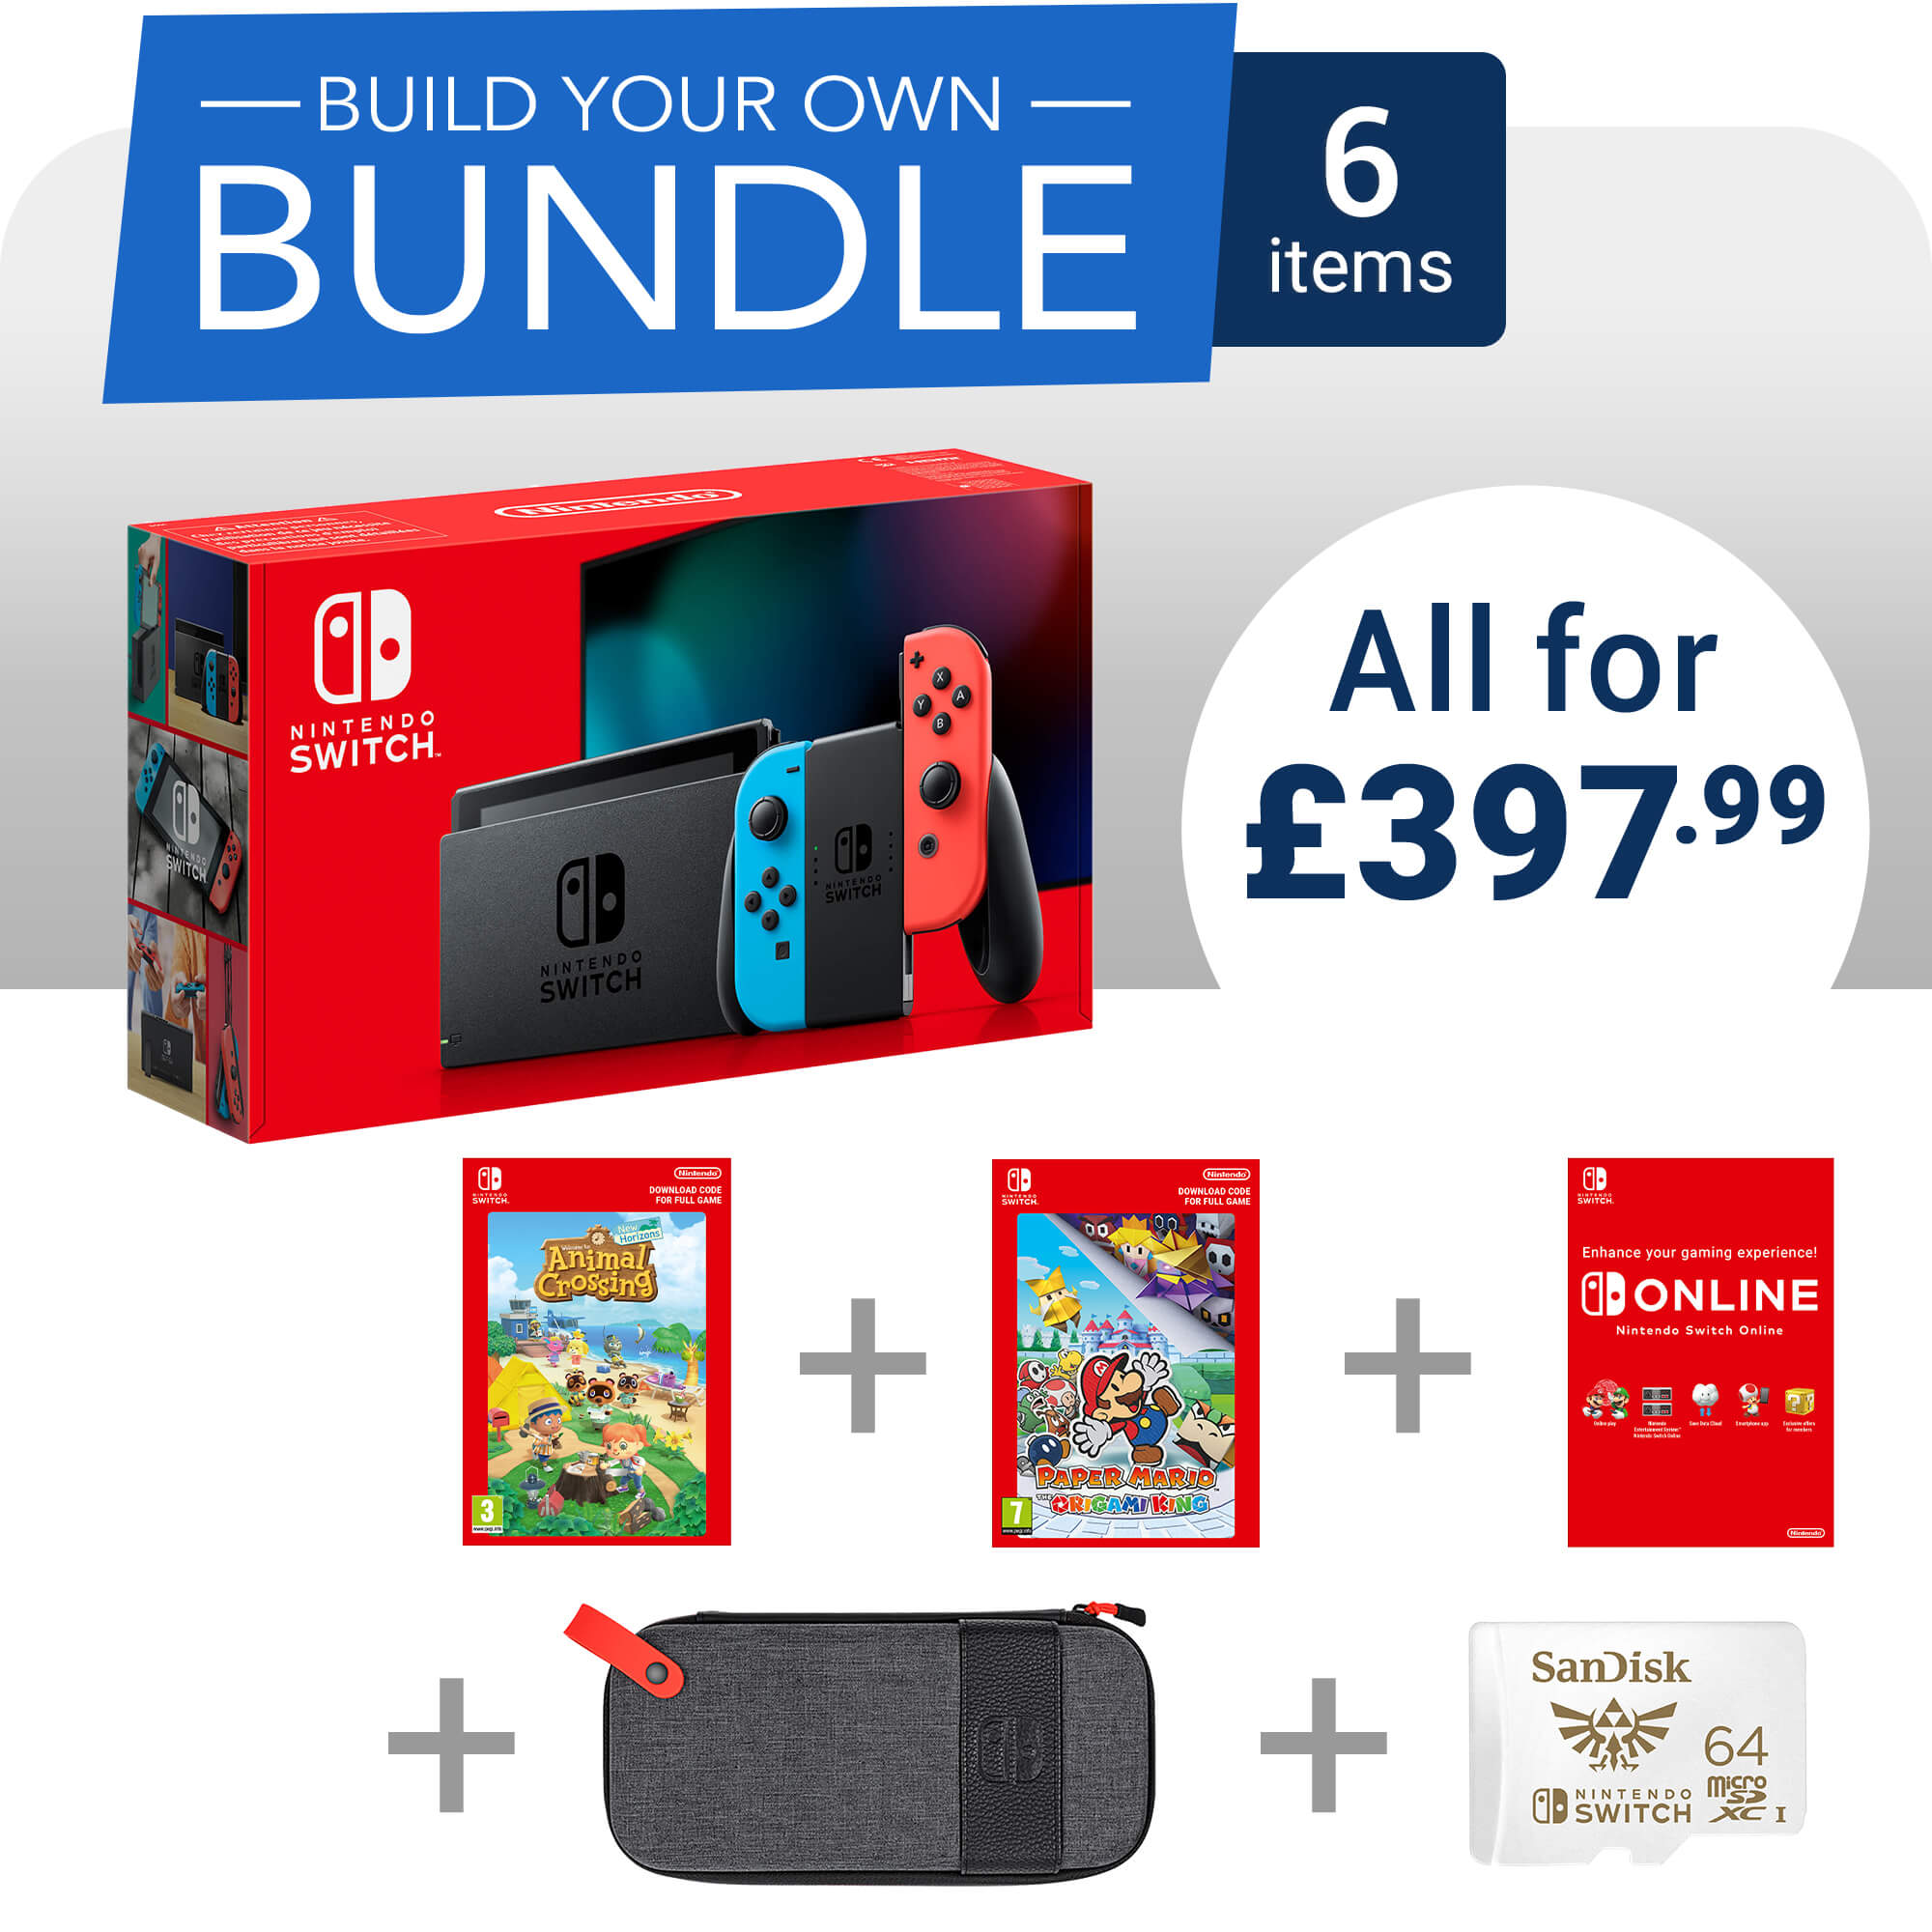 Build Your Own Nintendo Switch Bundle - 6 items - £397.99